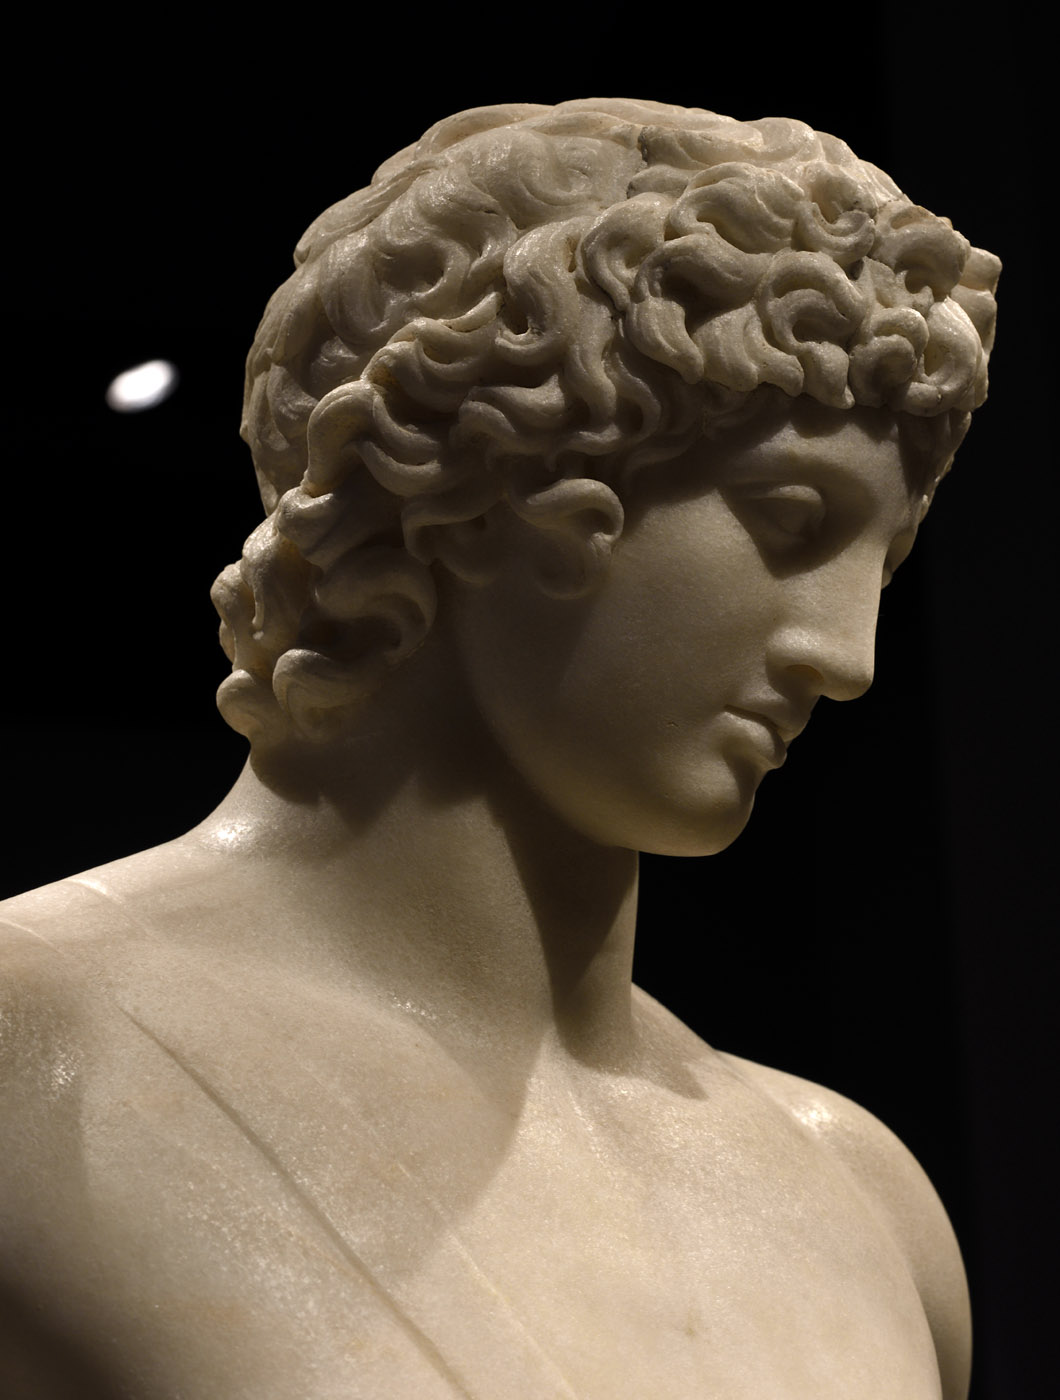 Apollo (so-called Apollo Chigi). A close-up. Large-graine Greek marble. Classicising Roman reworking inspired by a Greek model of the 4th century BCE. Inv. No. 75675. Rome, Roman National Museum, Palazzo Massimo alle Terme